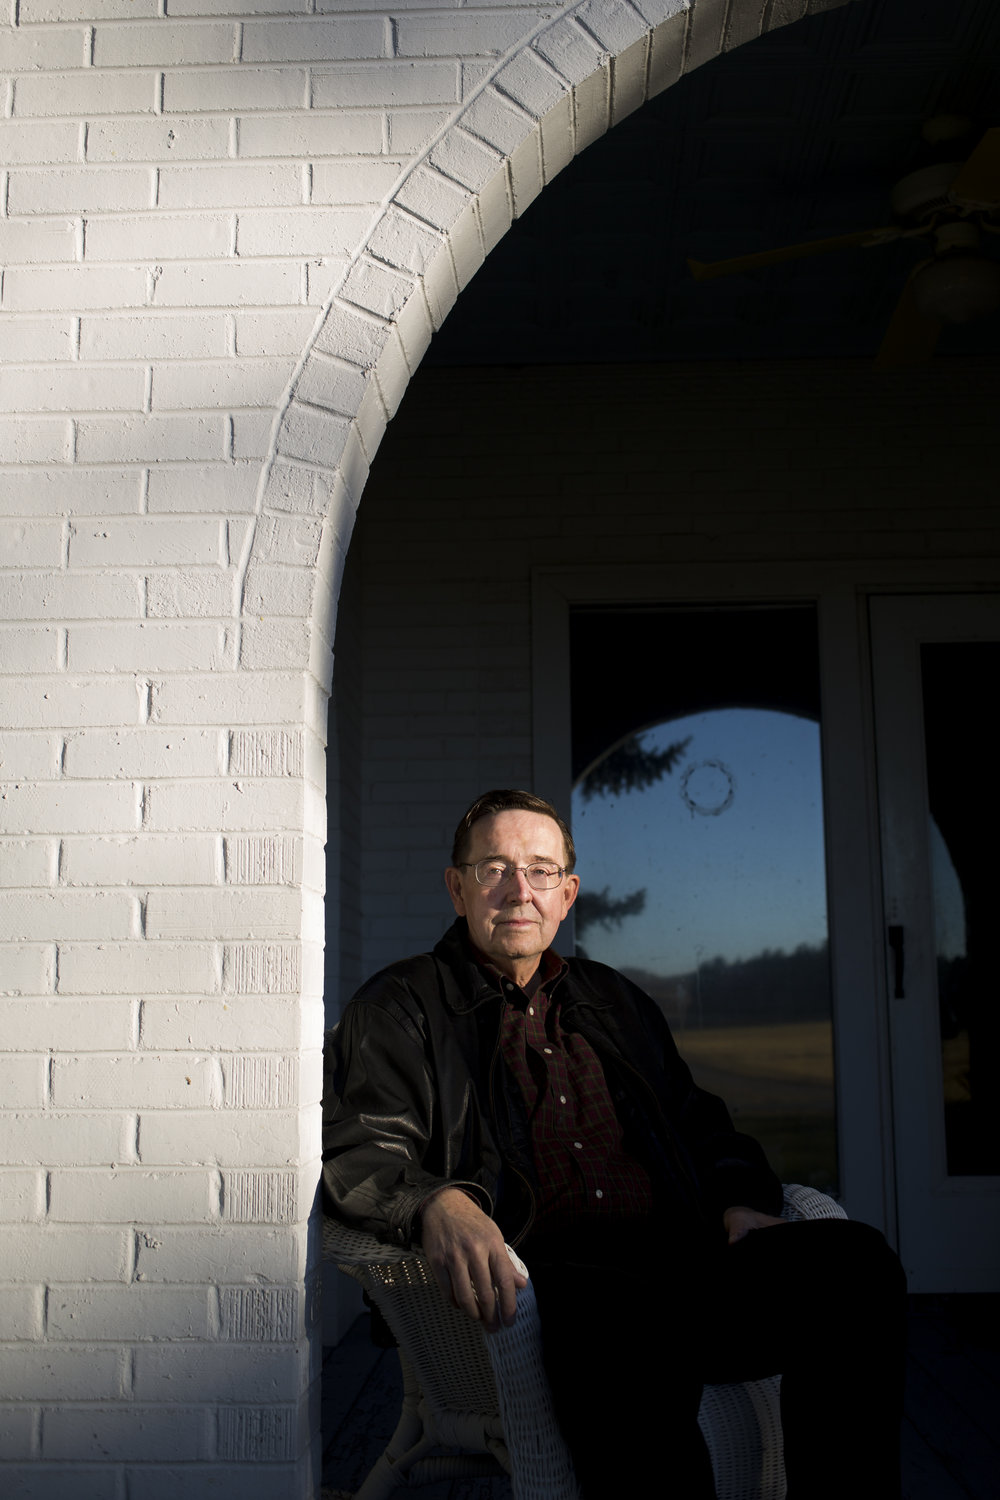 Nebraska State Senator Al Davis outside his home in Hyannis, Nebraska November, 3, 2015.